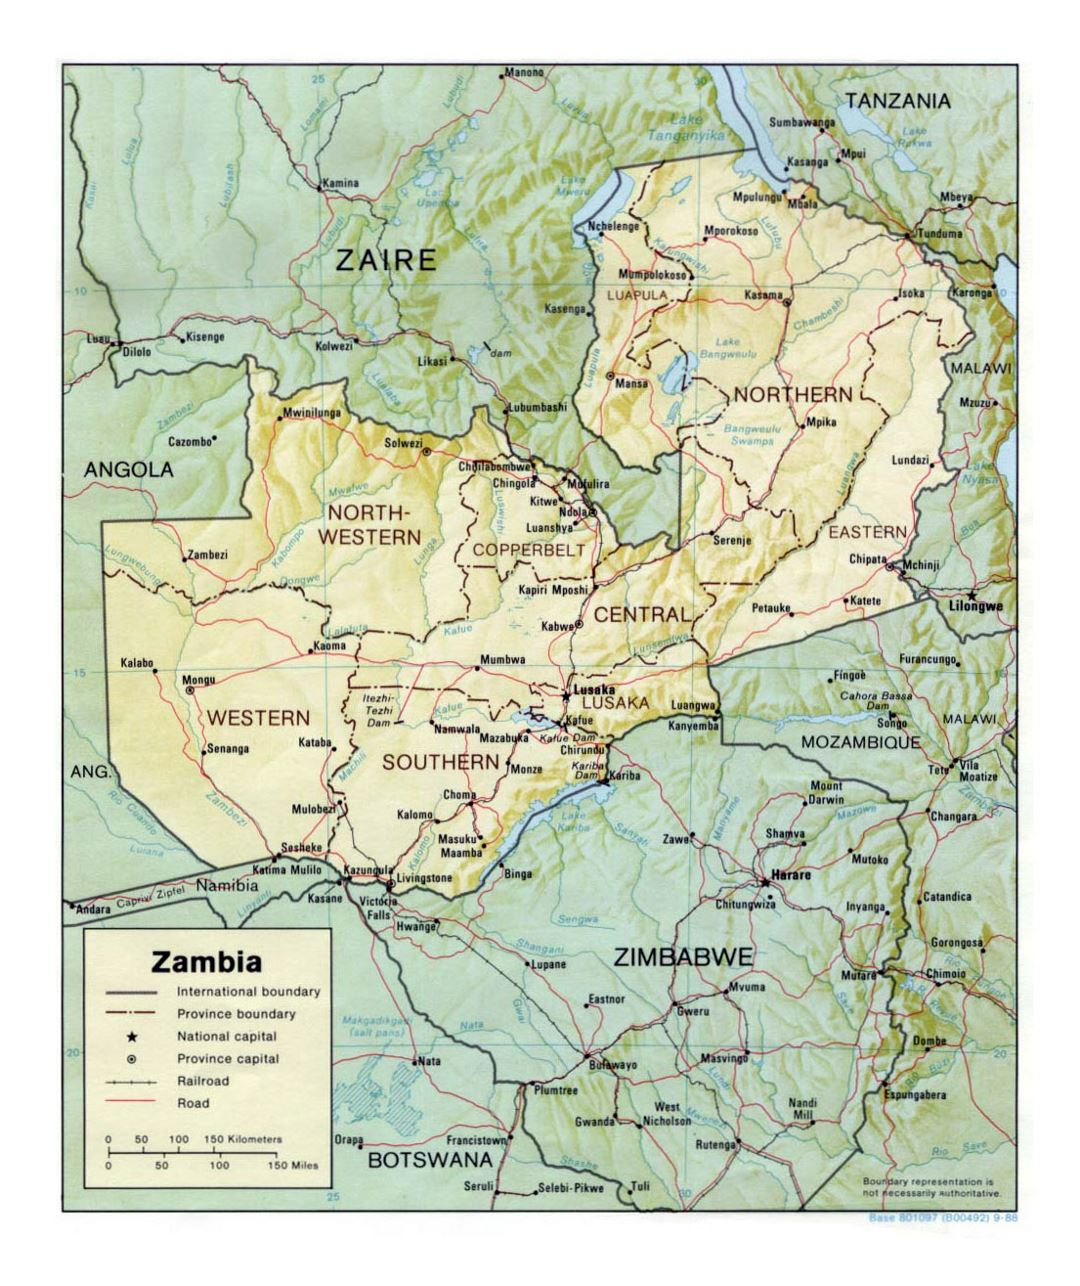 Detailed political and administrative map of Zambia with relief, roads, railroads and major cities - 1988